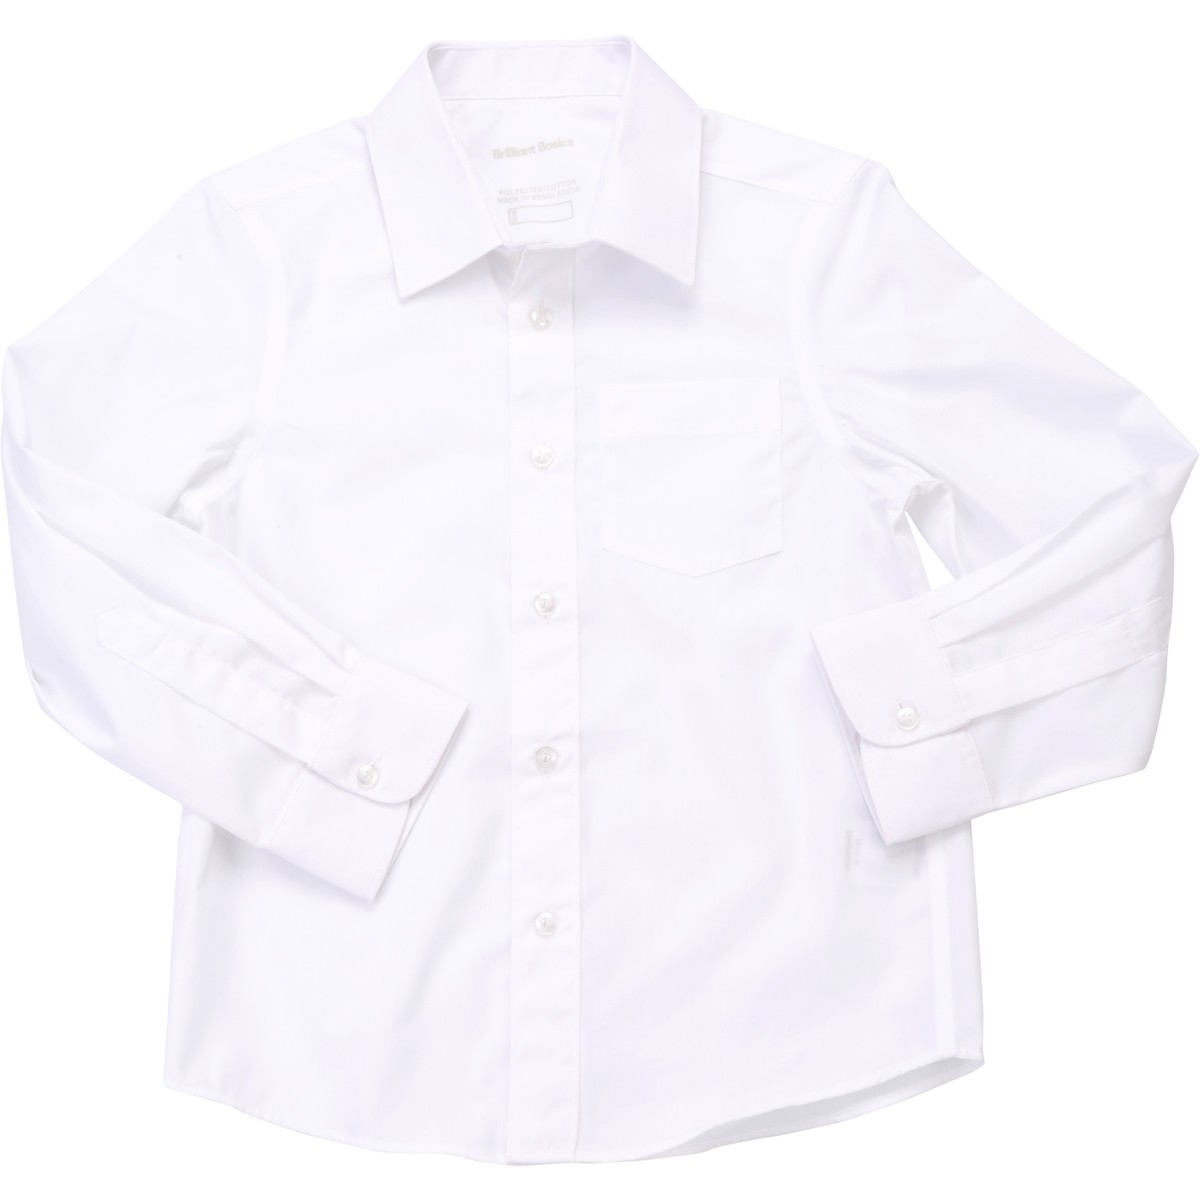 Big W School Shirts Big W White School Shirts Edge Engineering And Consulting Limited